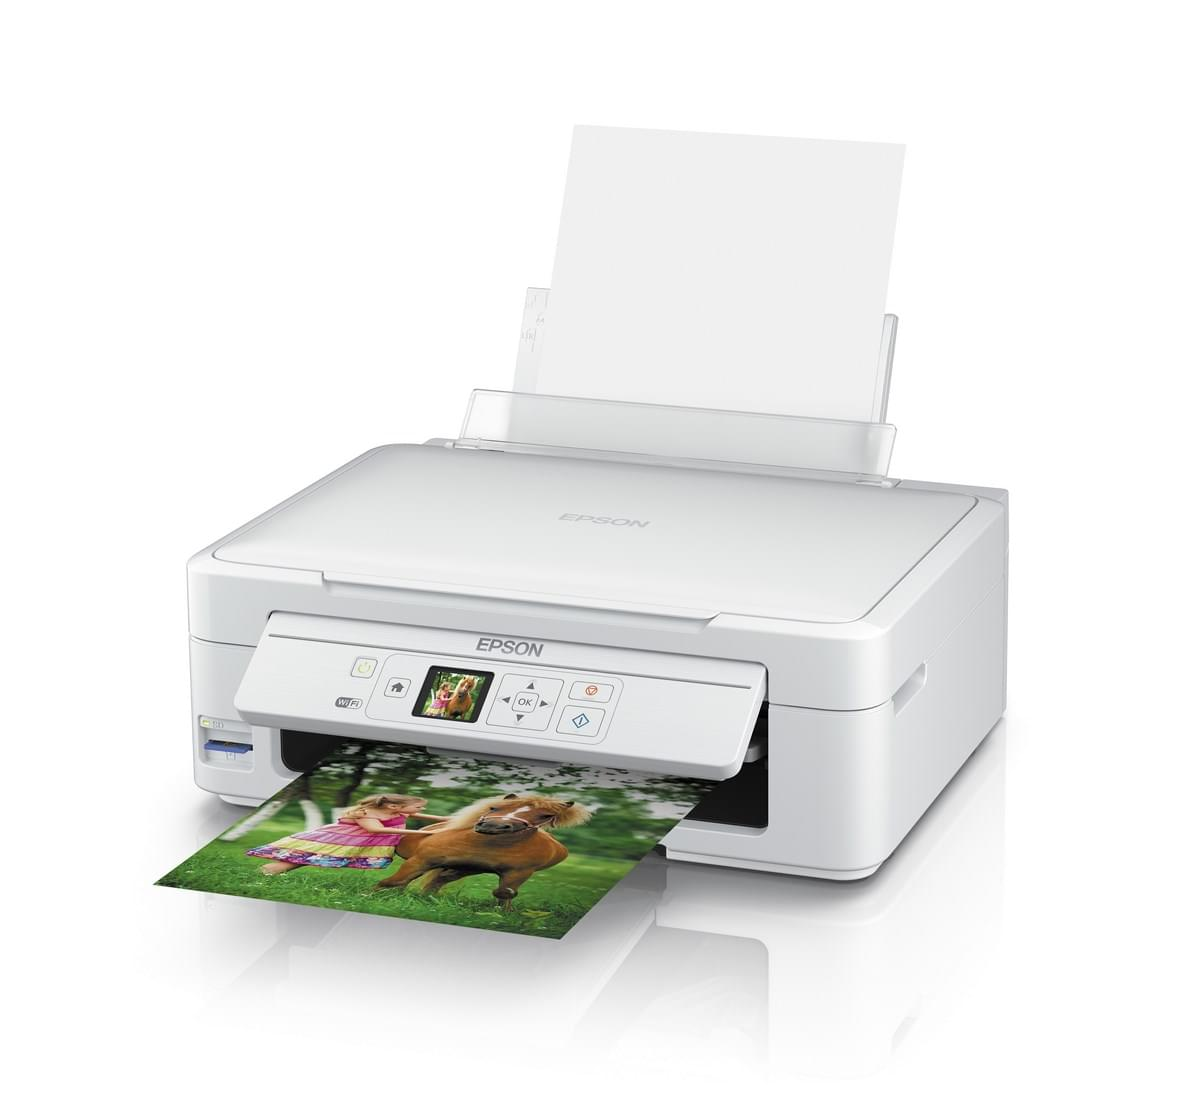 Imprimante multifonction Epson Expression Home XP-325 WiFi - 0